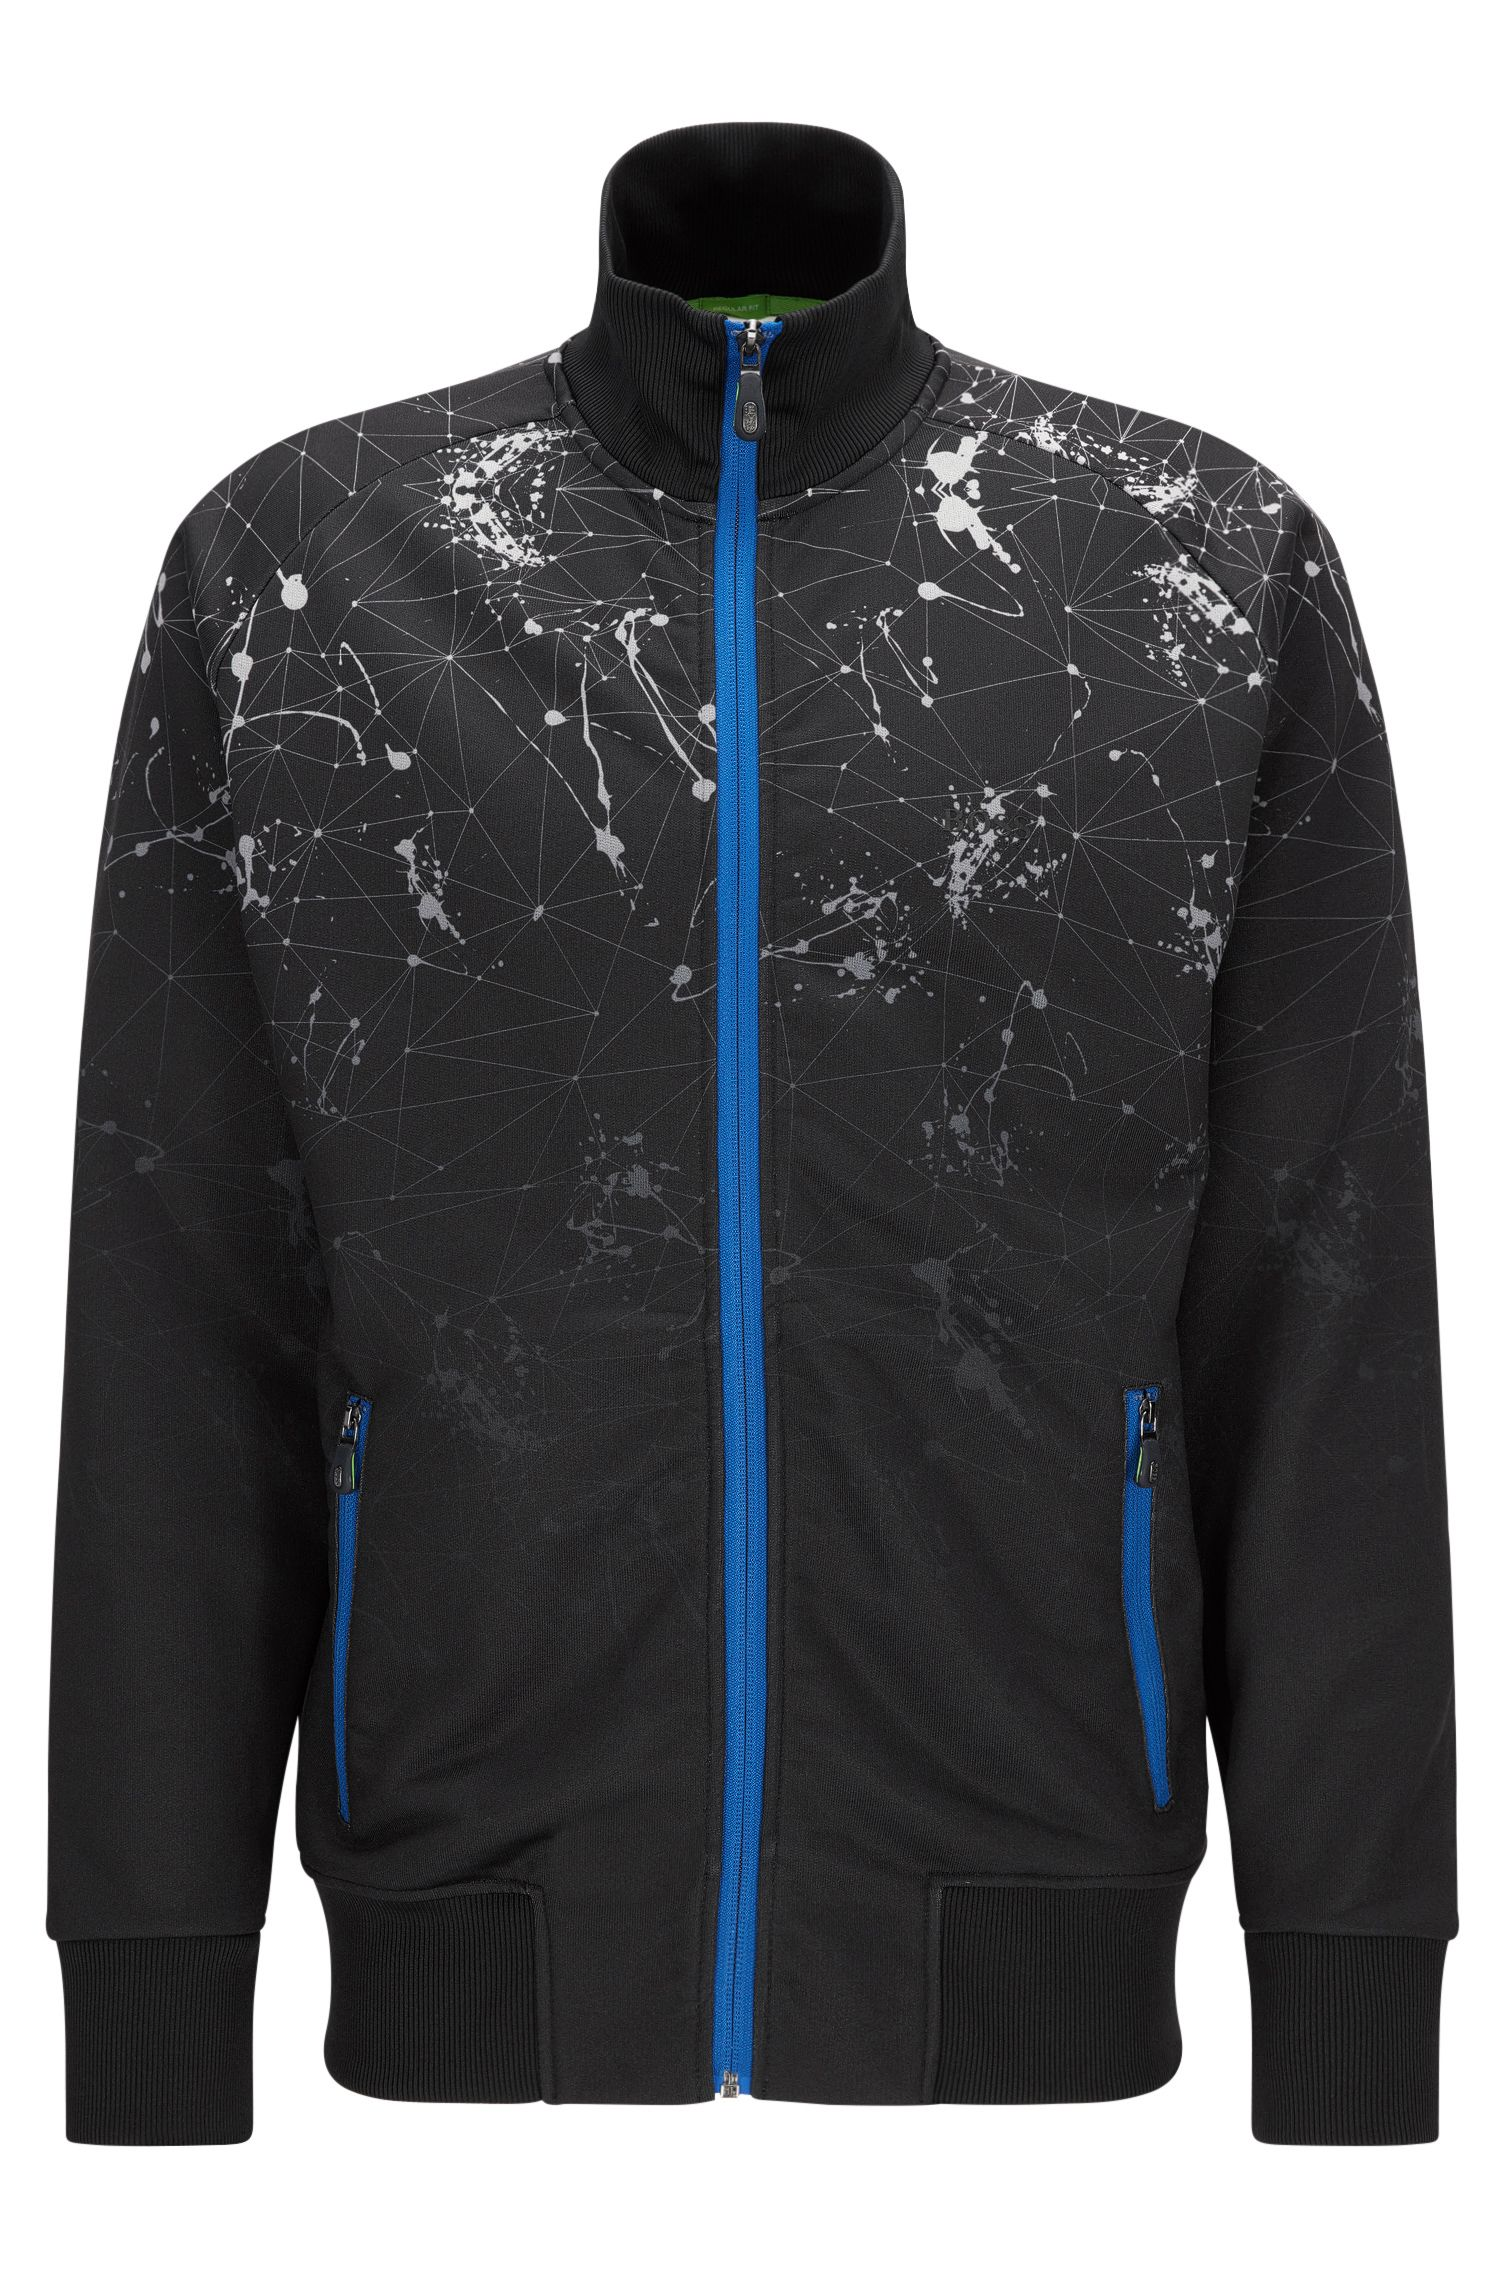 Zip-through jacket in a technical blend